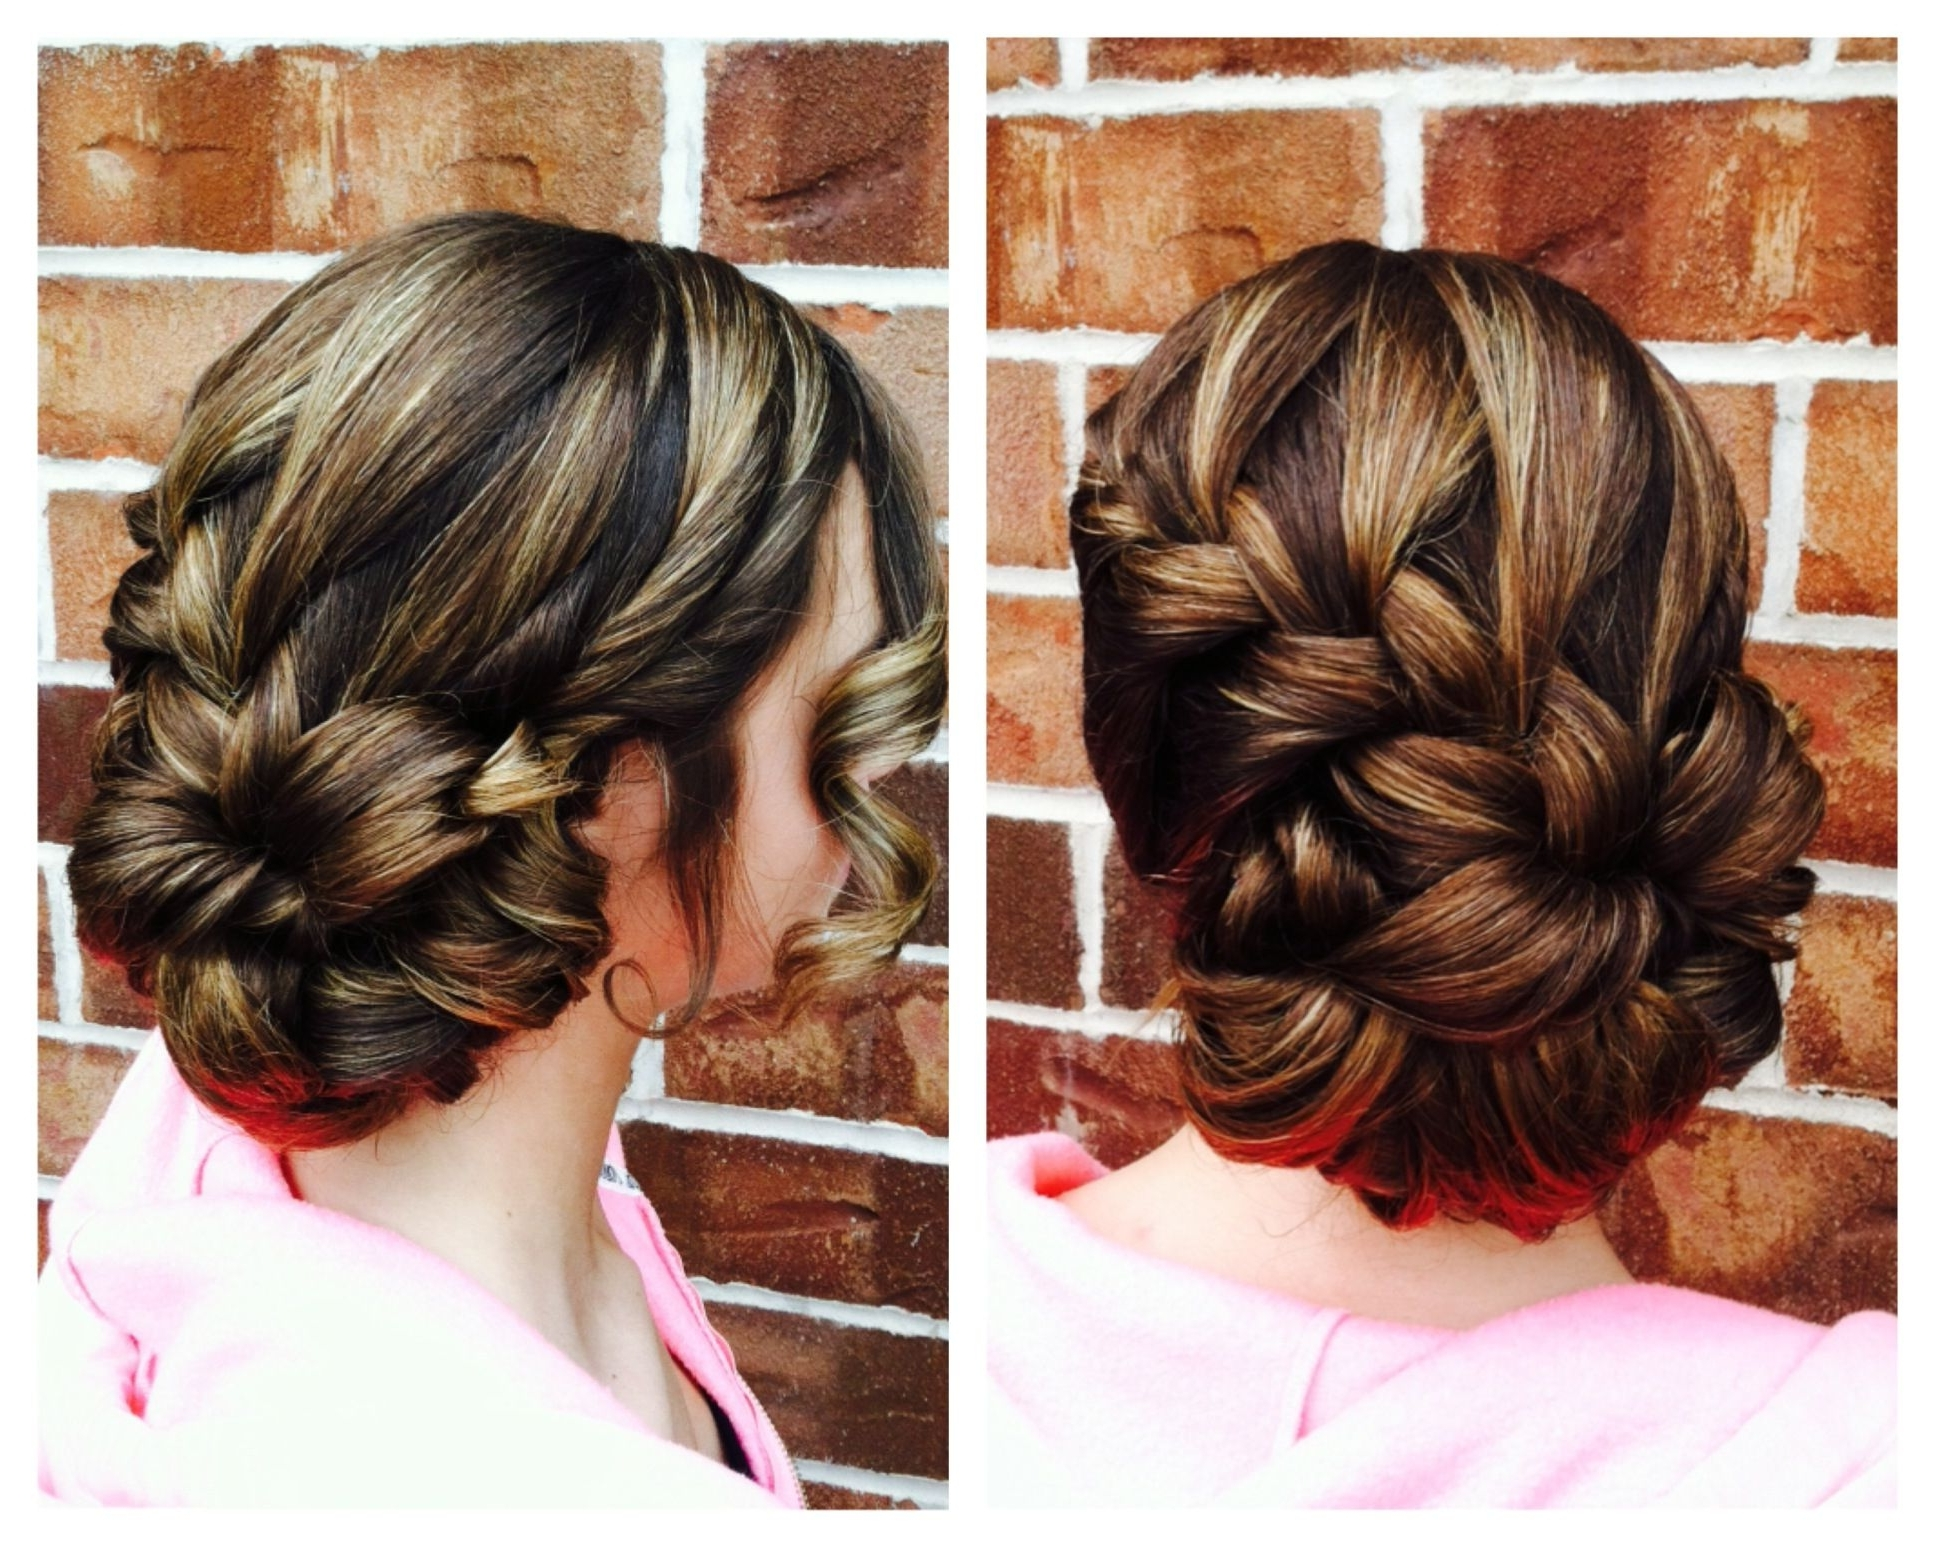 Wedding Homecoming Updo | Hair | Pinterest | Homecoming Updo, Updo In Homecoming Updo Hairstyles (View 15 of 15)